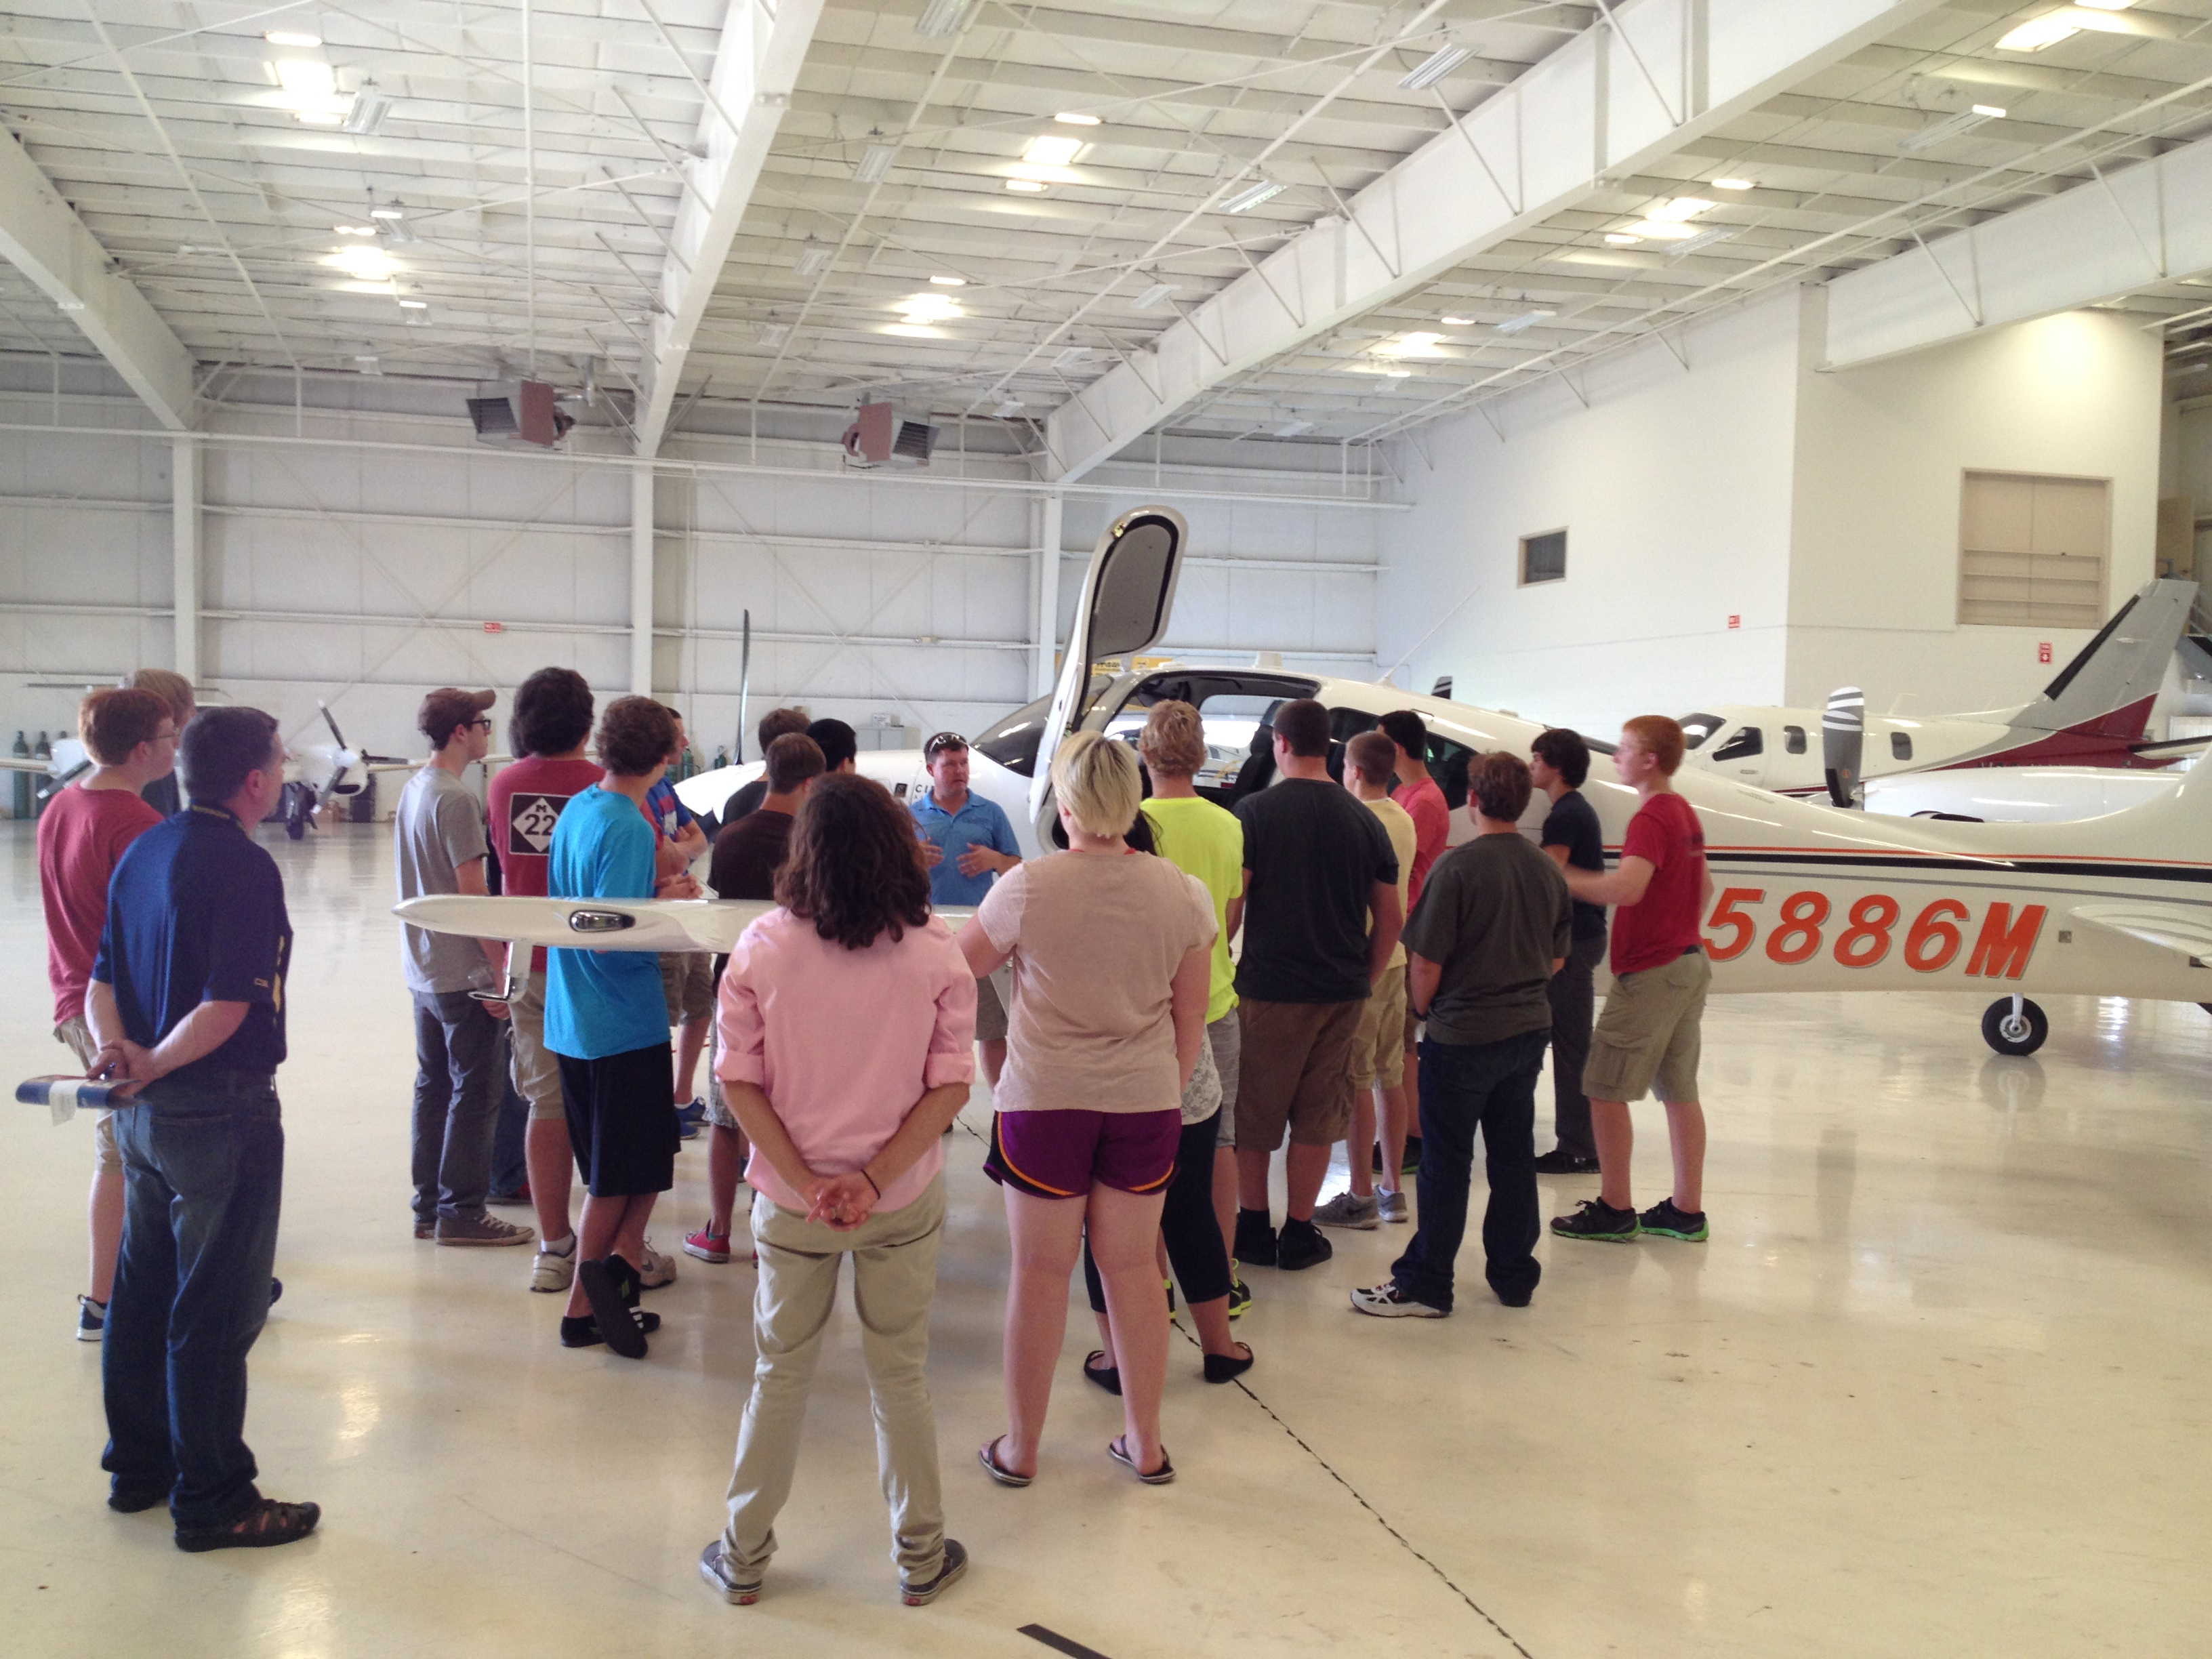 High School flight training